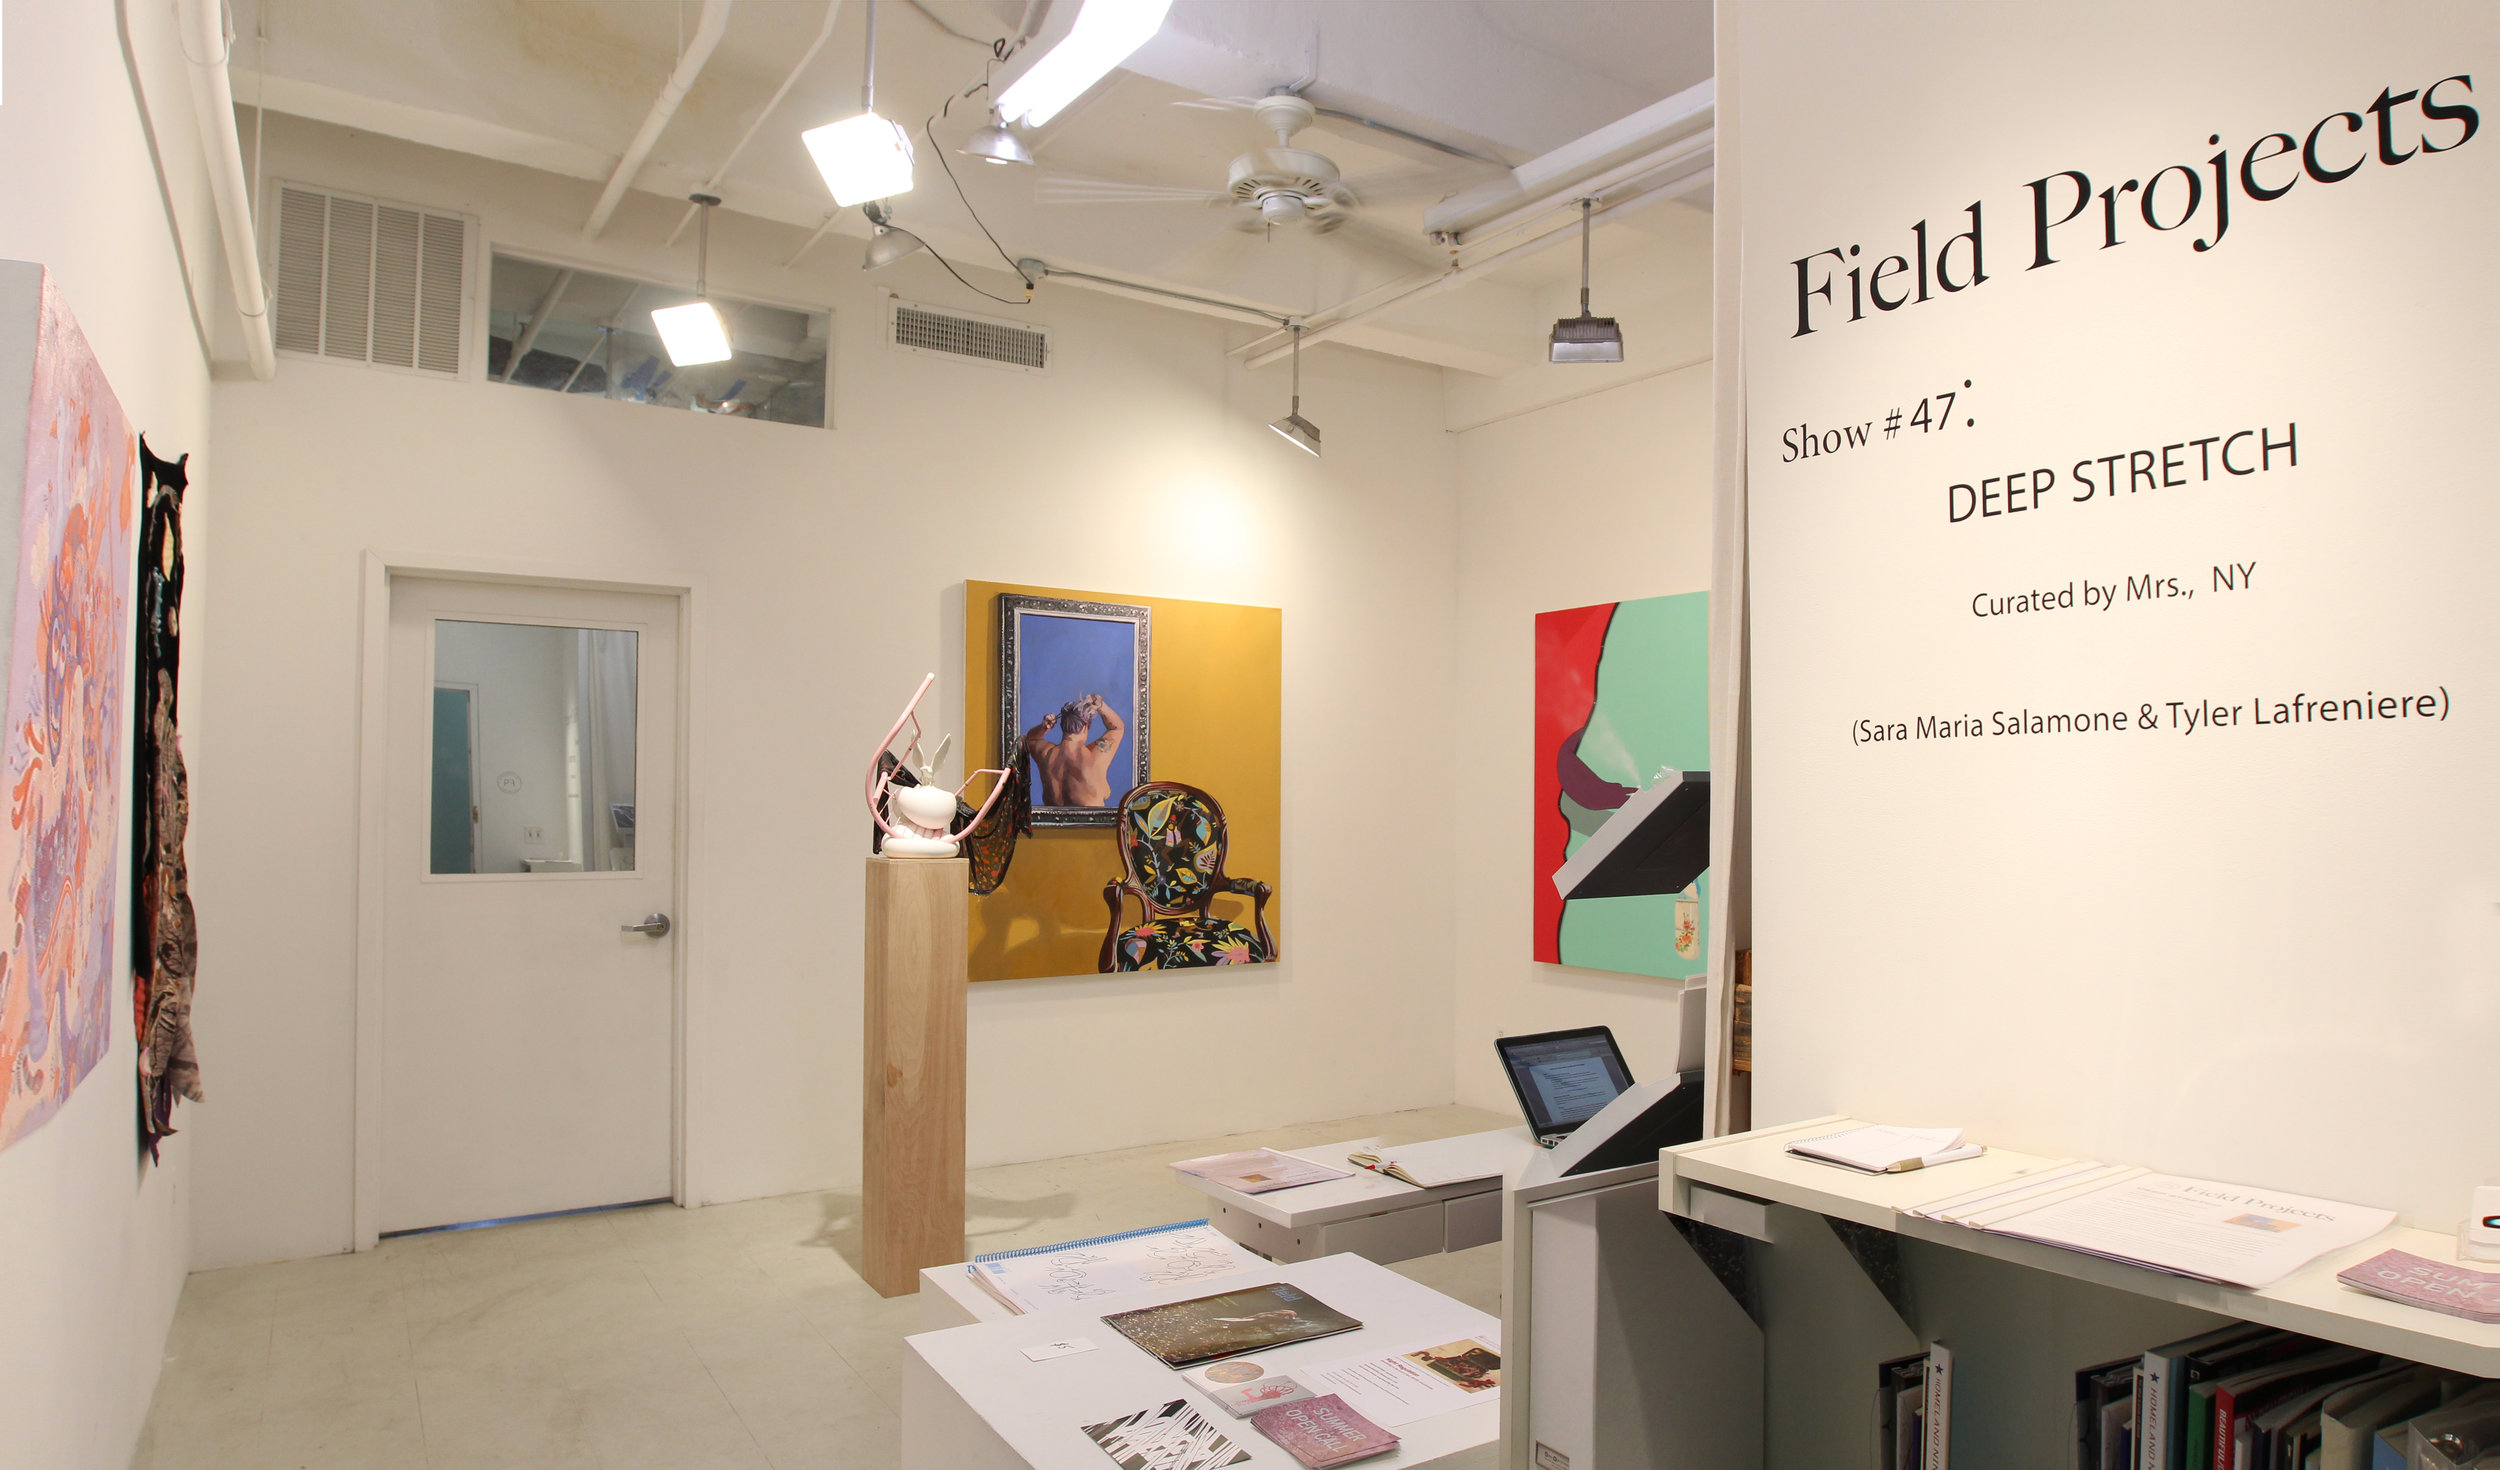 Show #47: Deep Stretch , 2018  Field Projects, NY Opening January 11, 2018  curated by Sara Maria Salamone & Tyler Lafreniere with   Caitlin Albritton, Dan Fig, Peter Hamlin, Lydia Pettit, Megan Stroech